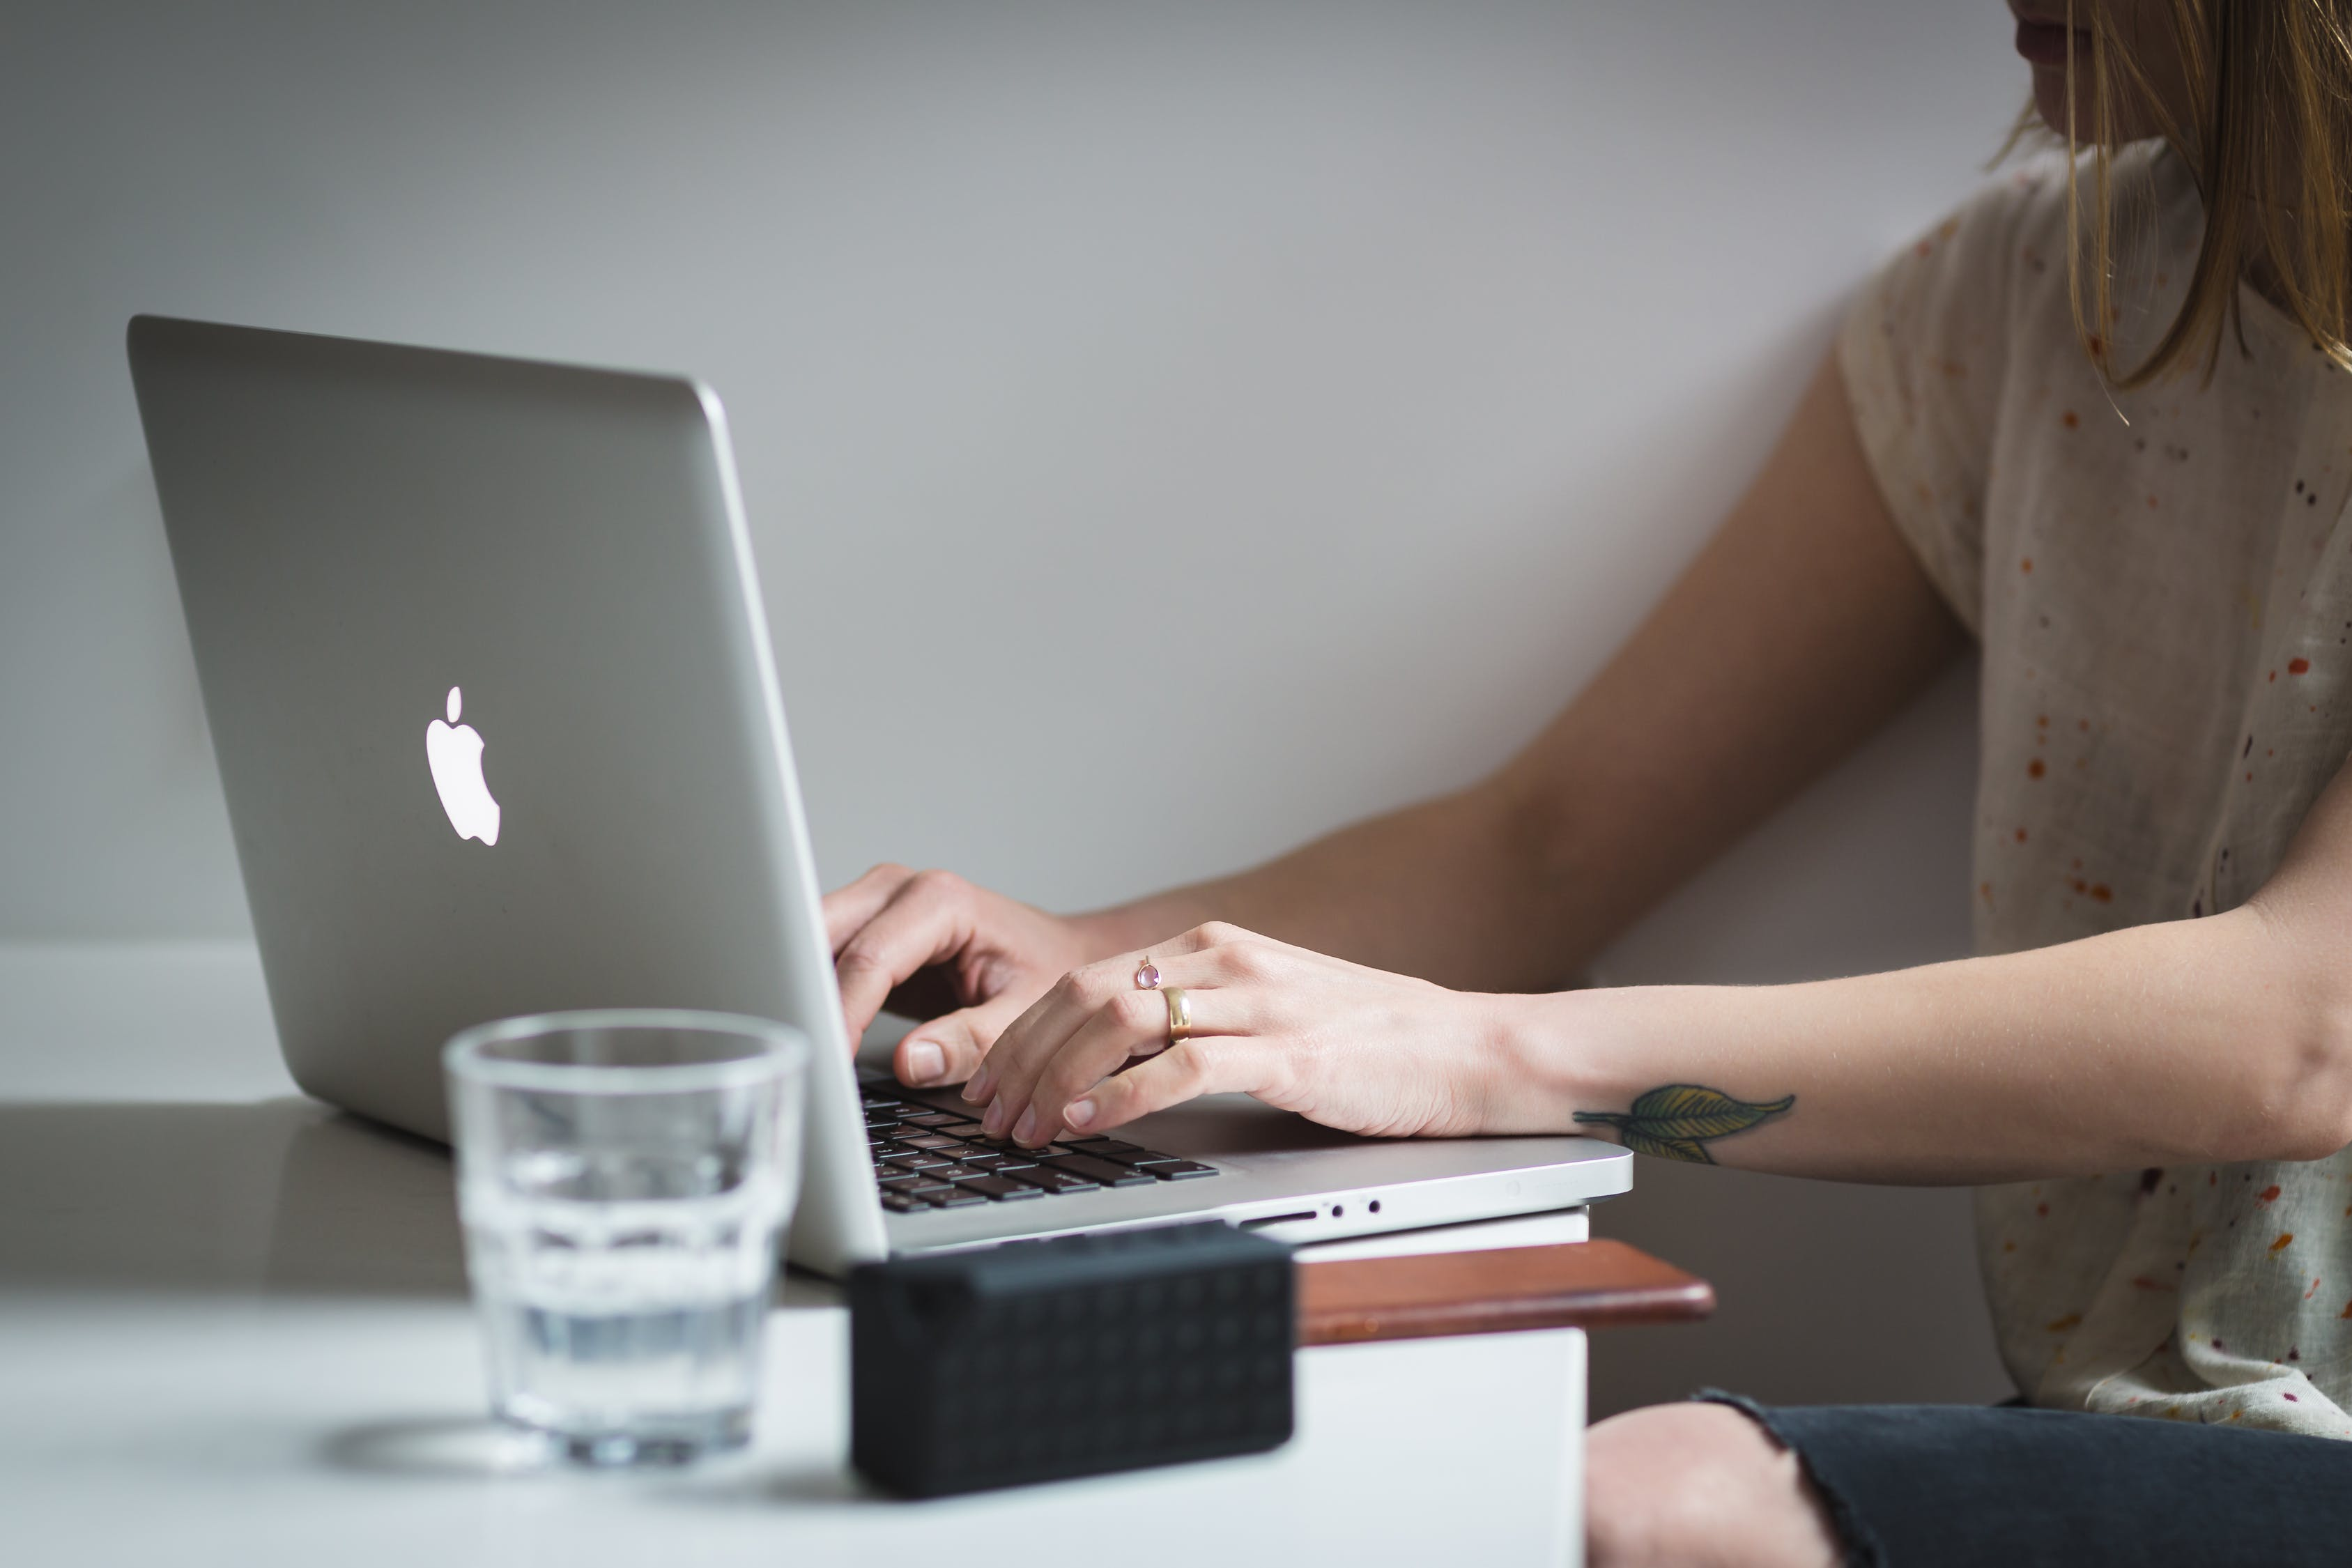 Woman Using Silver Macbook Near Shot Glass on Table